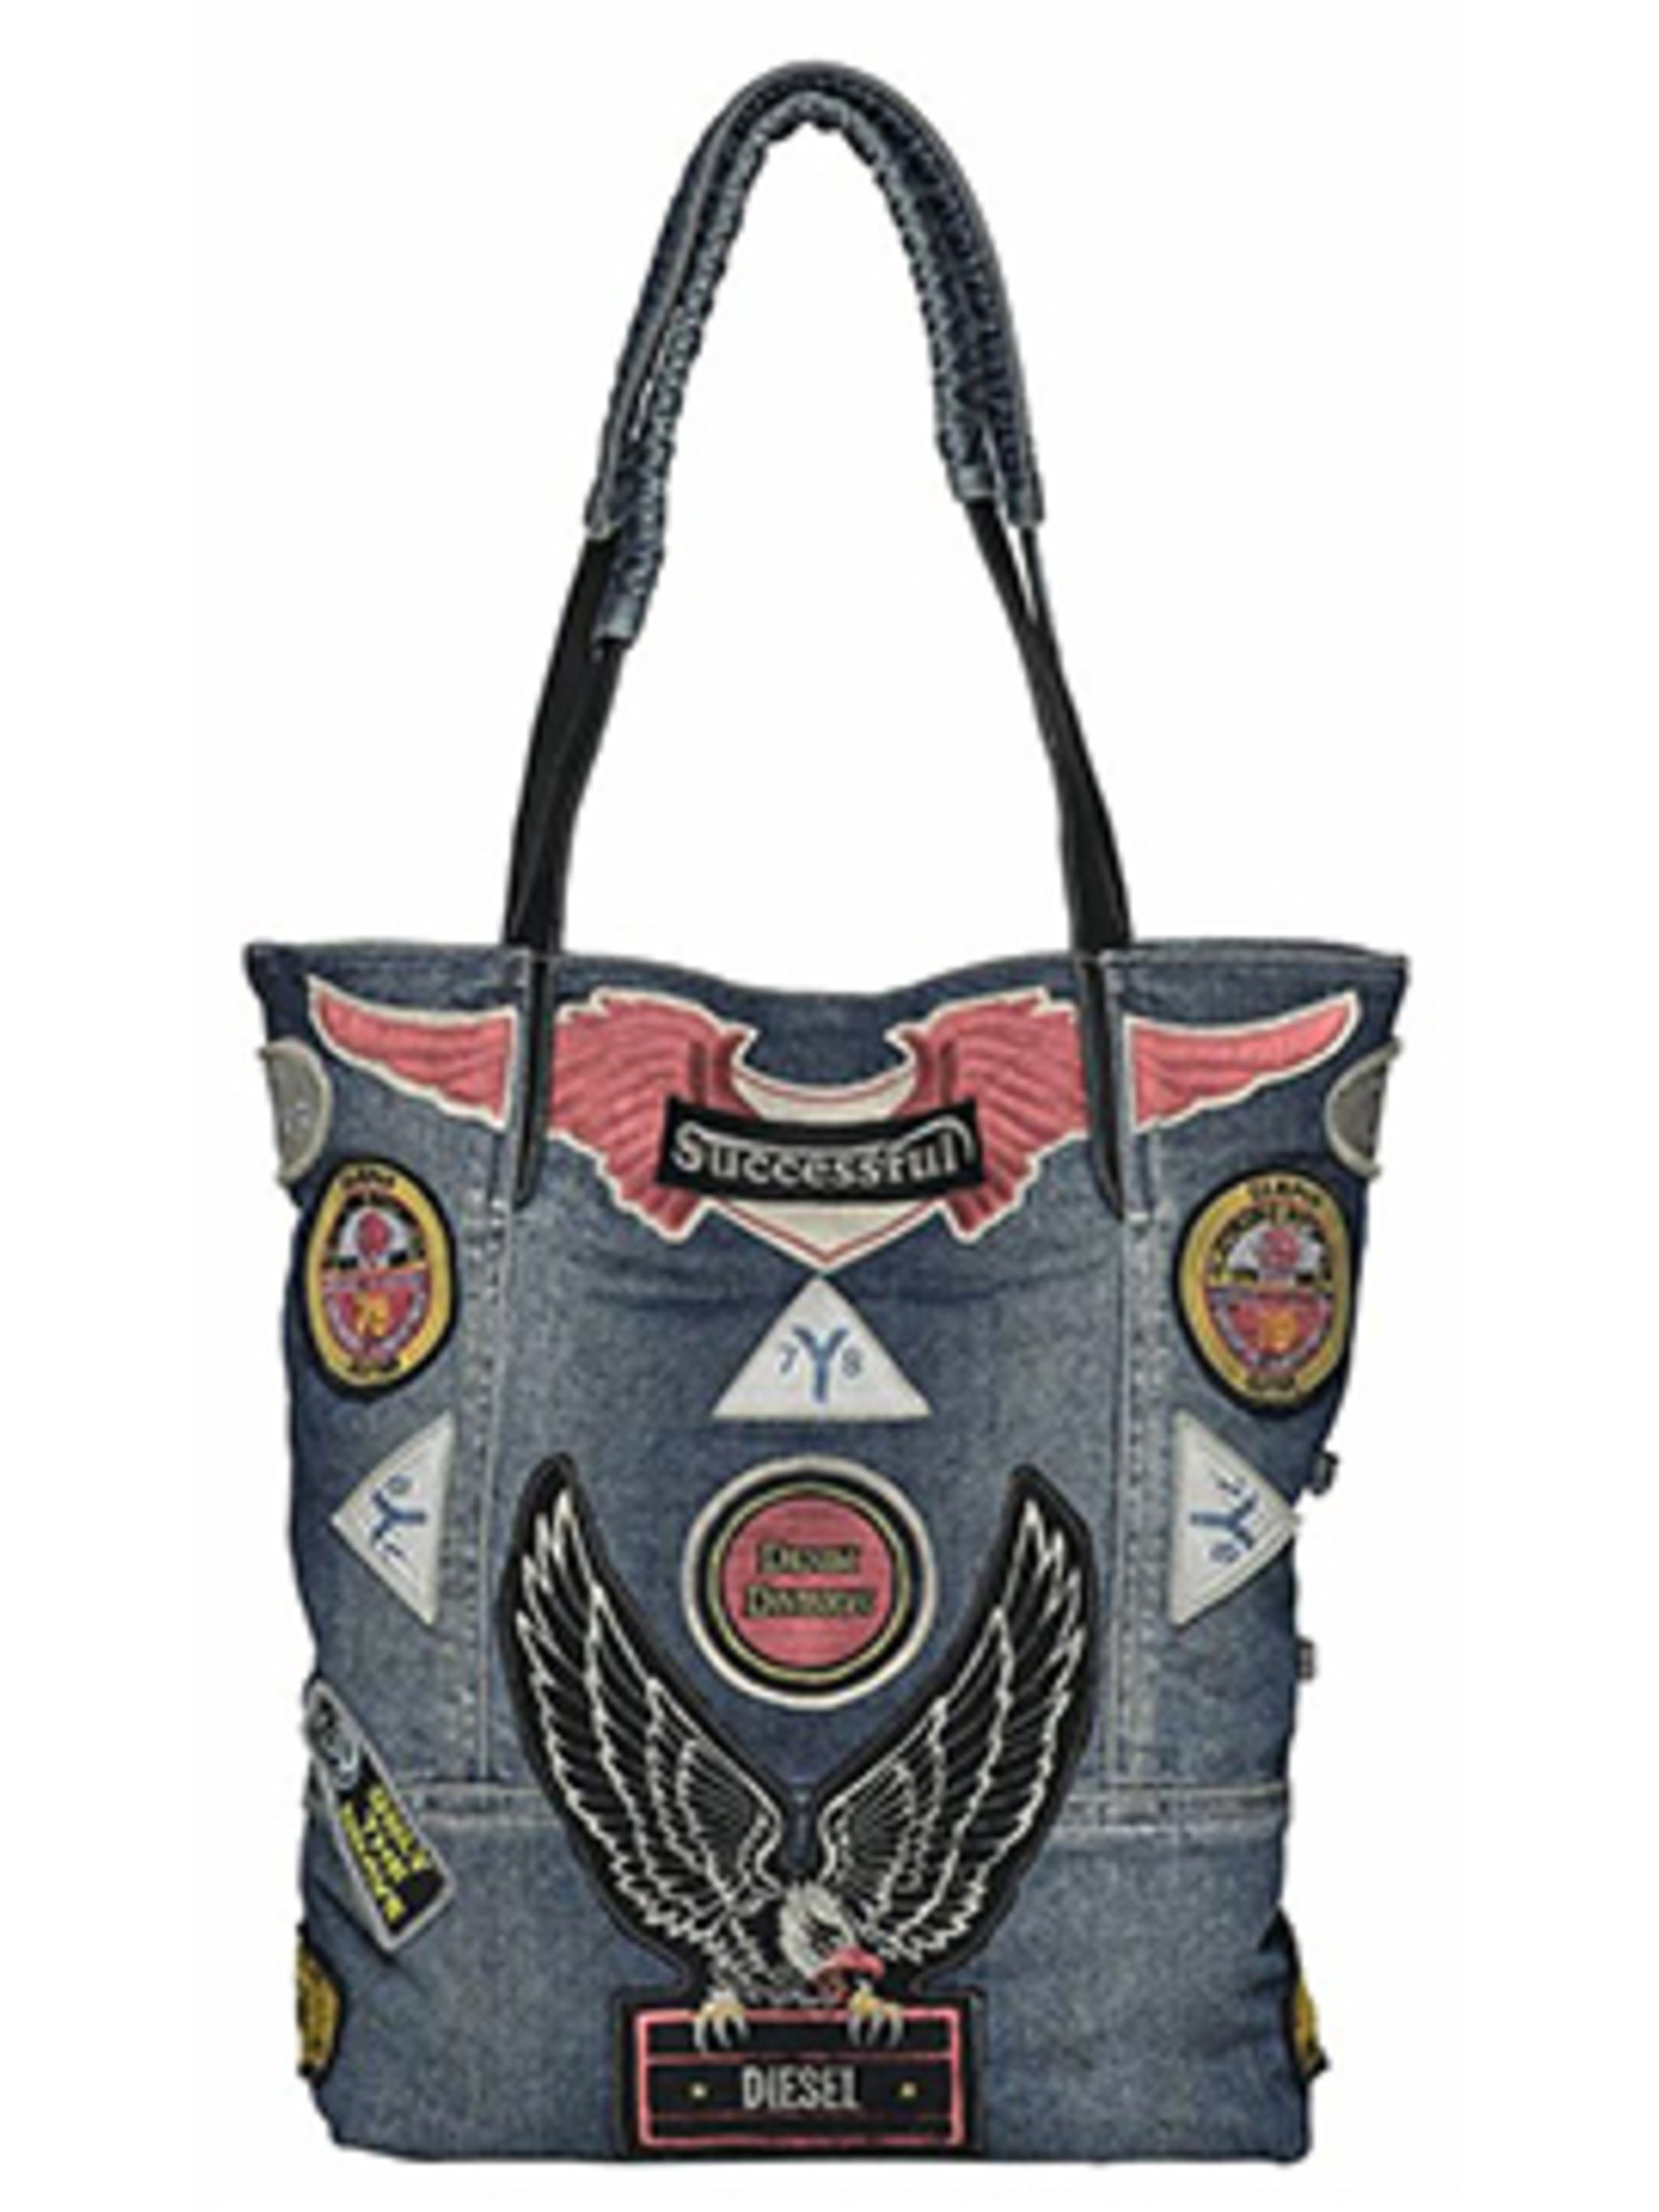 <p>#DieselTribute collection bag</p>